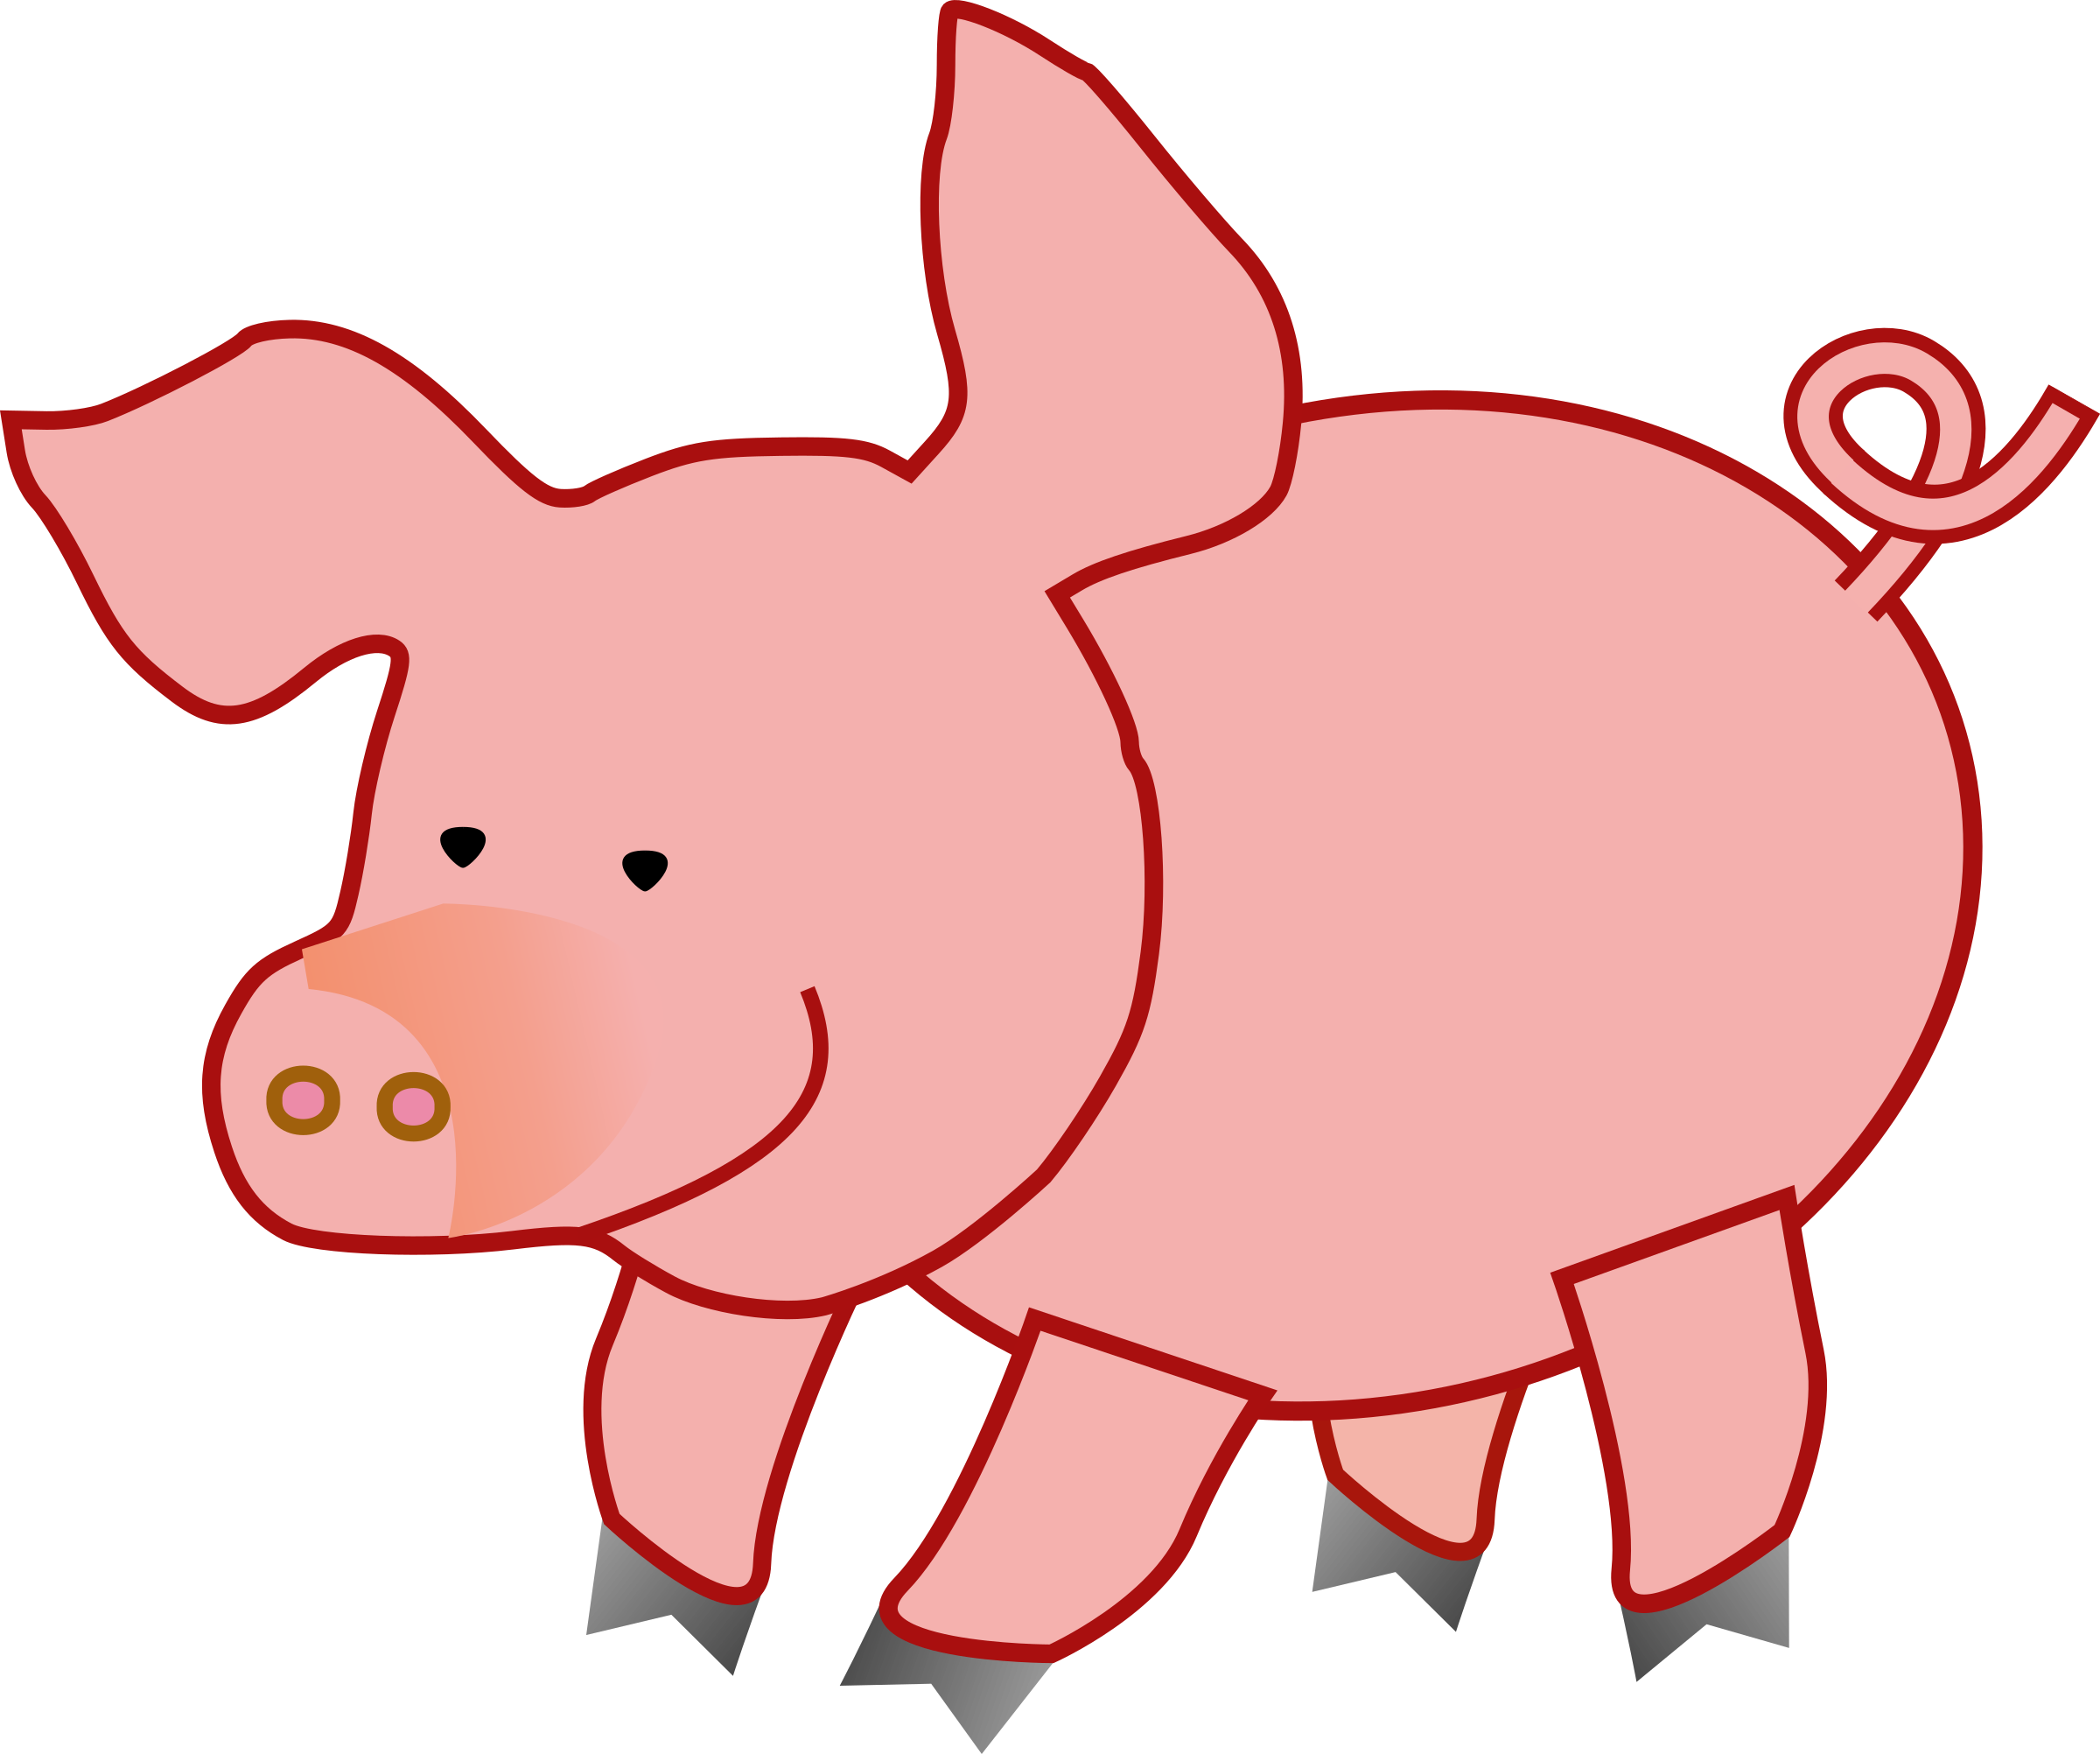 Big image png. Pig clipart template